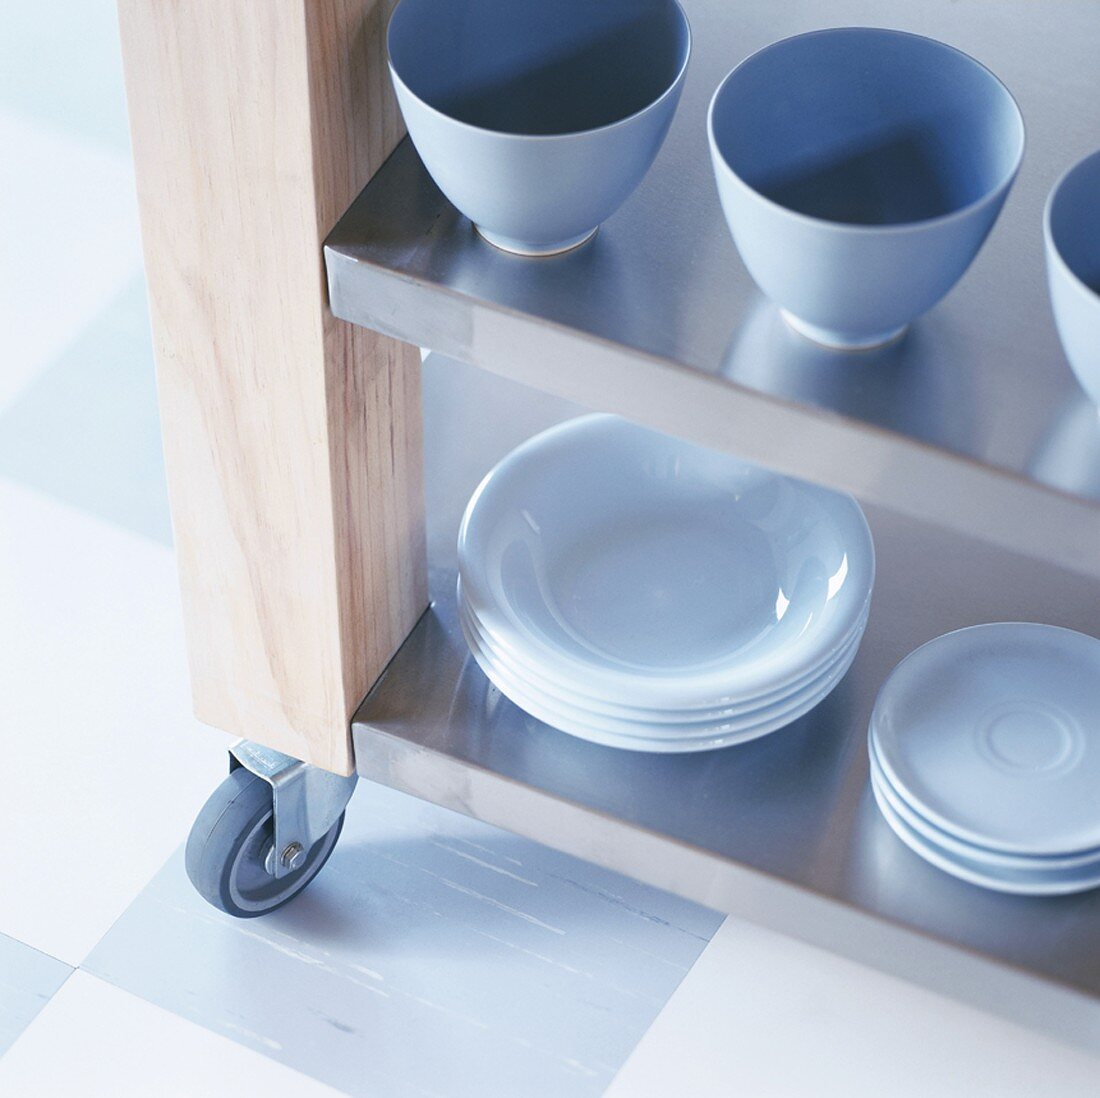 Cups and bowls on trolley